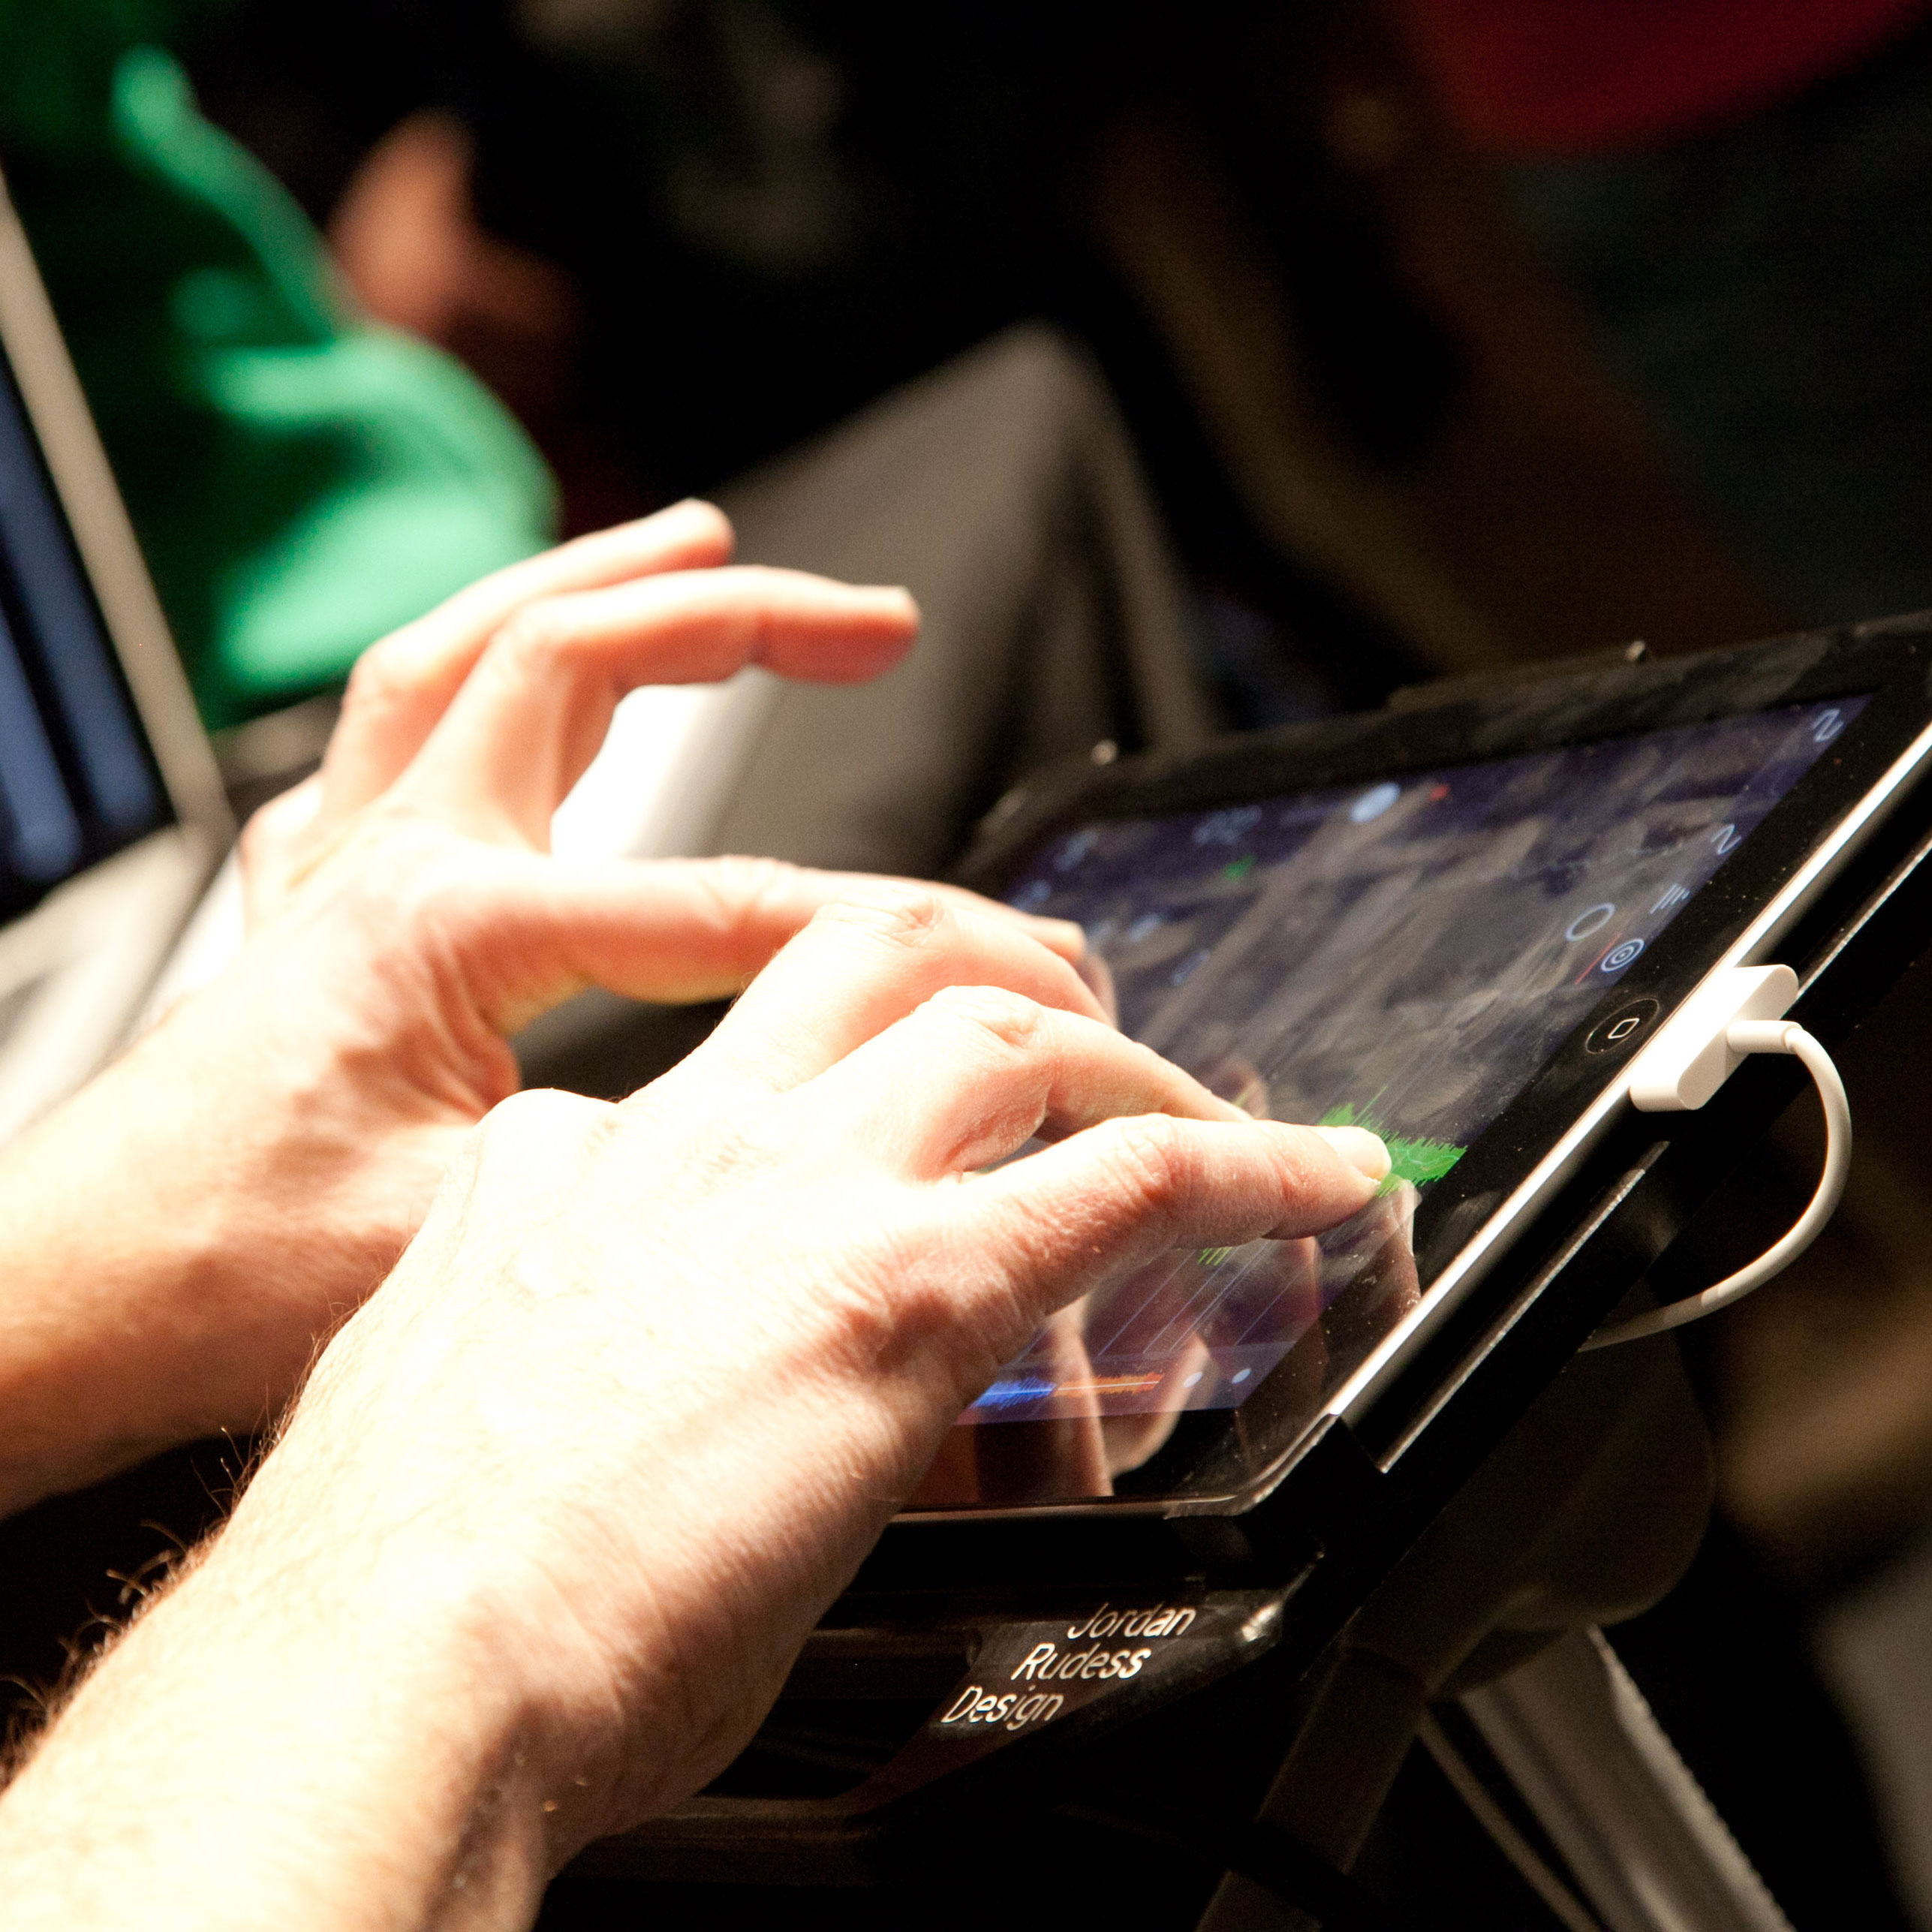 Image of hands composing music on an iPad, music department